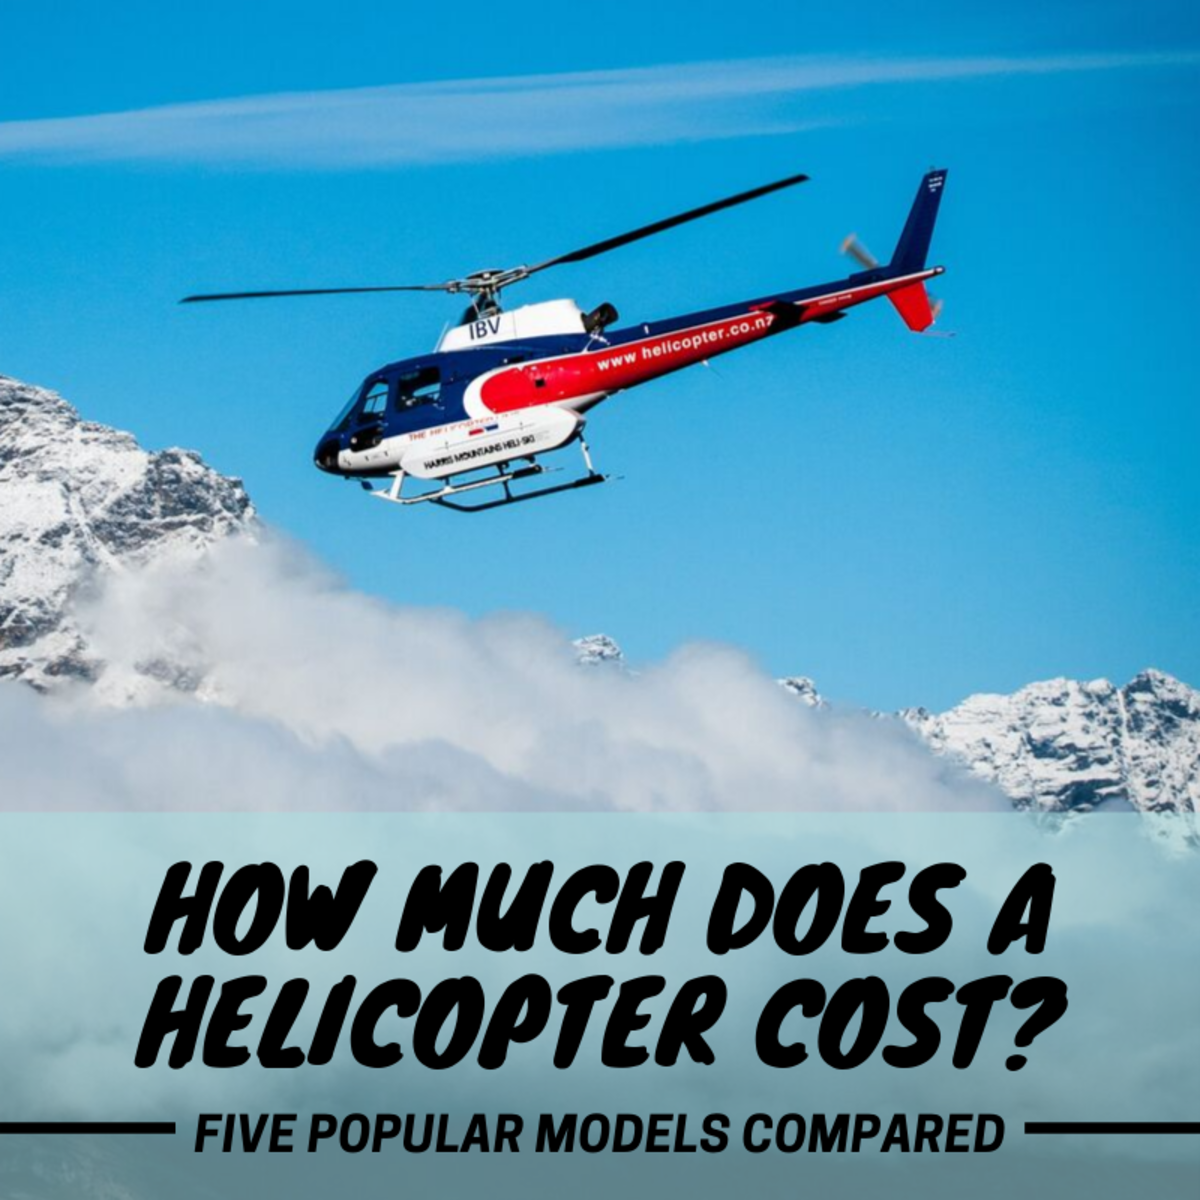 Have you ever wondered how much a new helicopter costs? Here's the low-down.